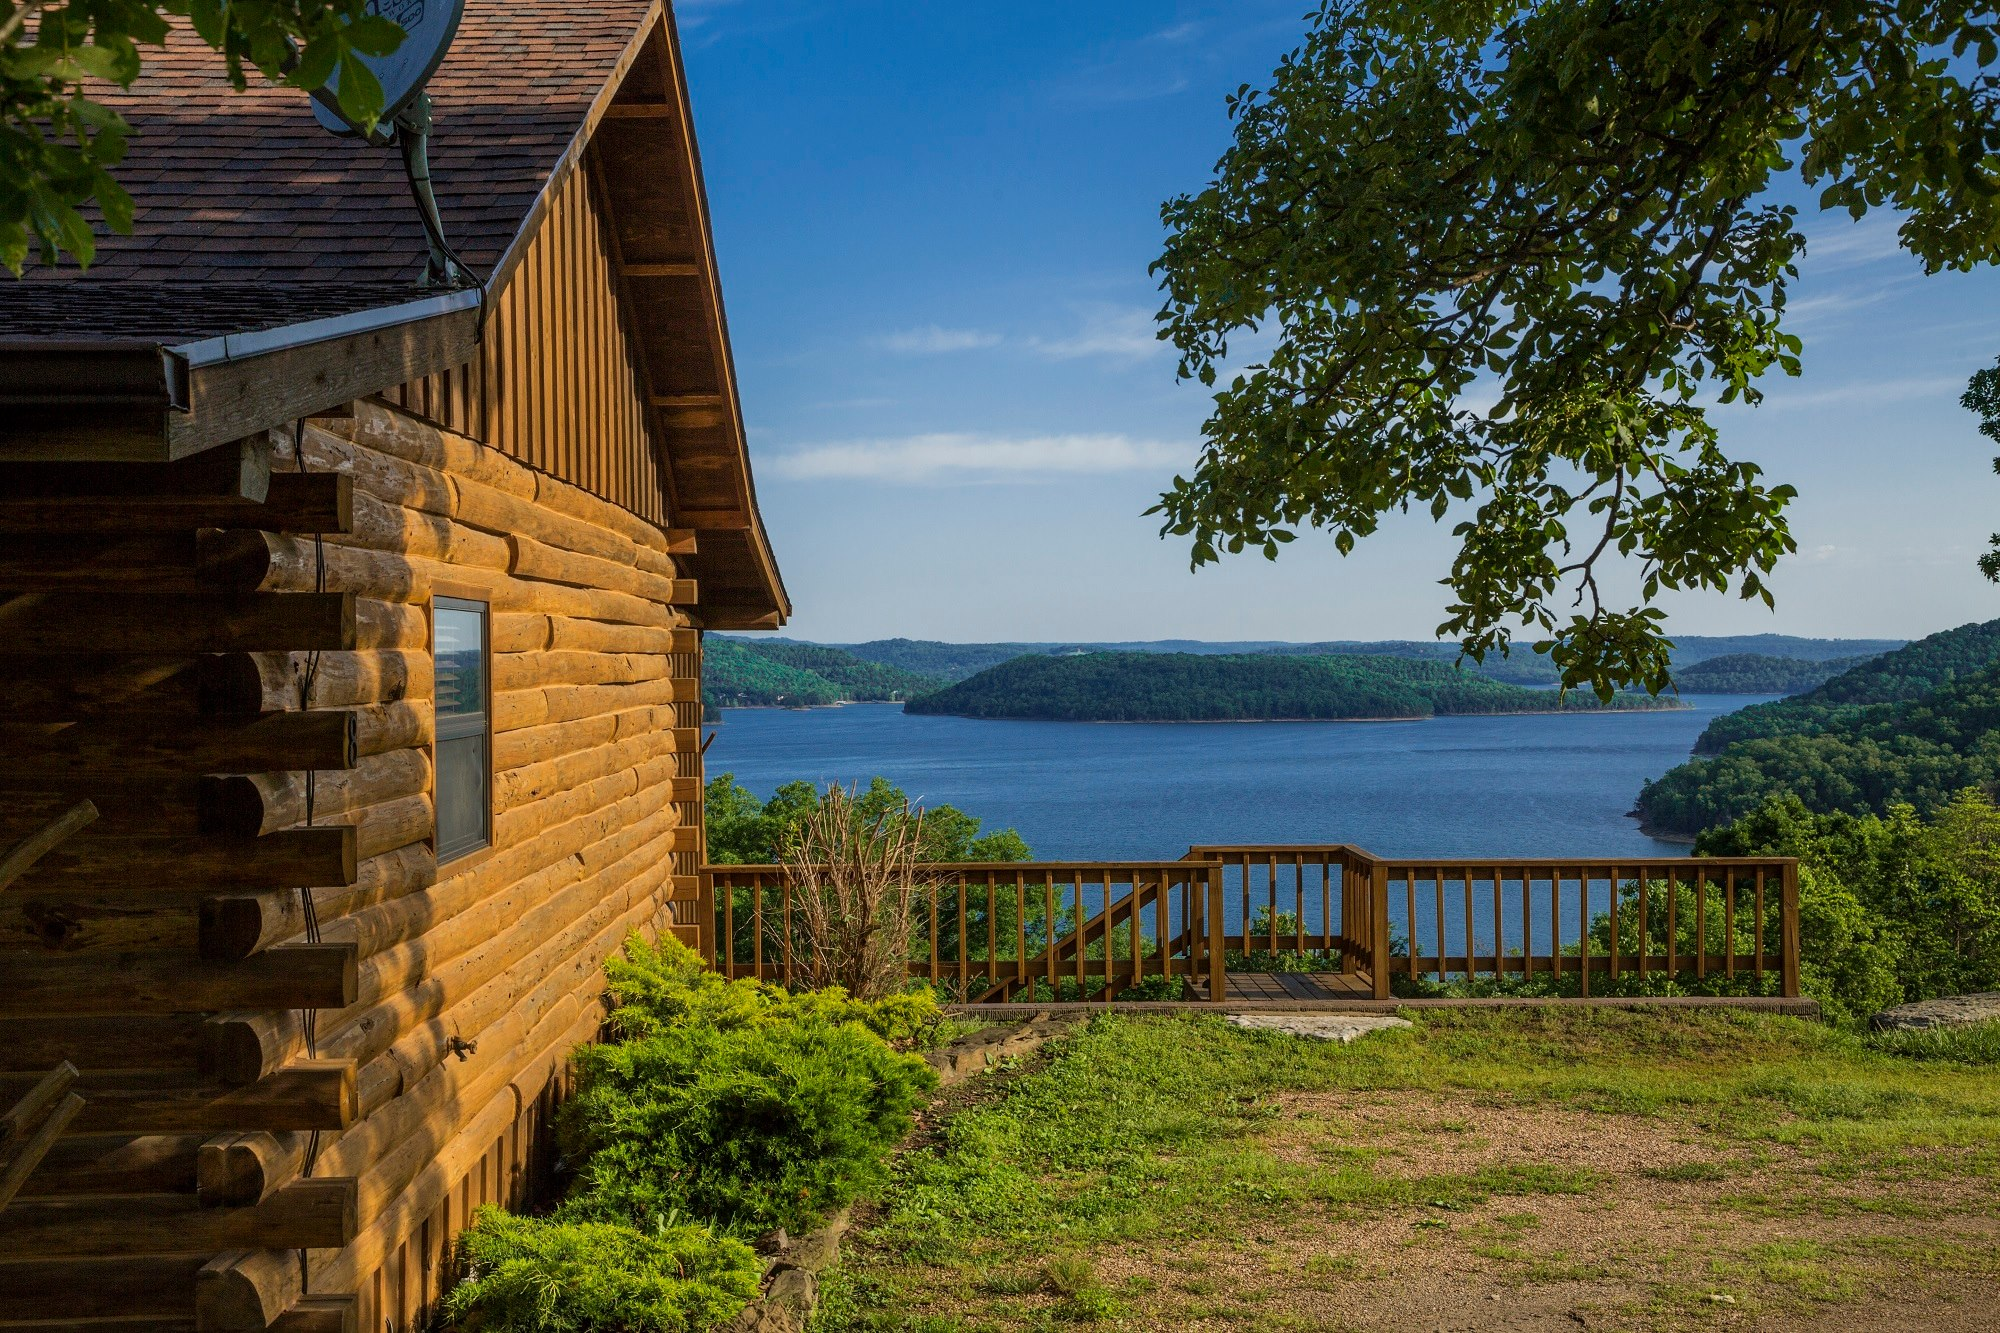 These Cozy Cabins Are The Ultimate Fall Getaway In The Ozarks – Real